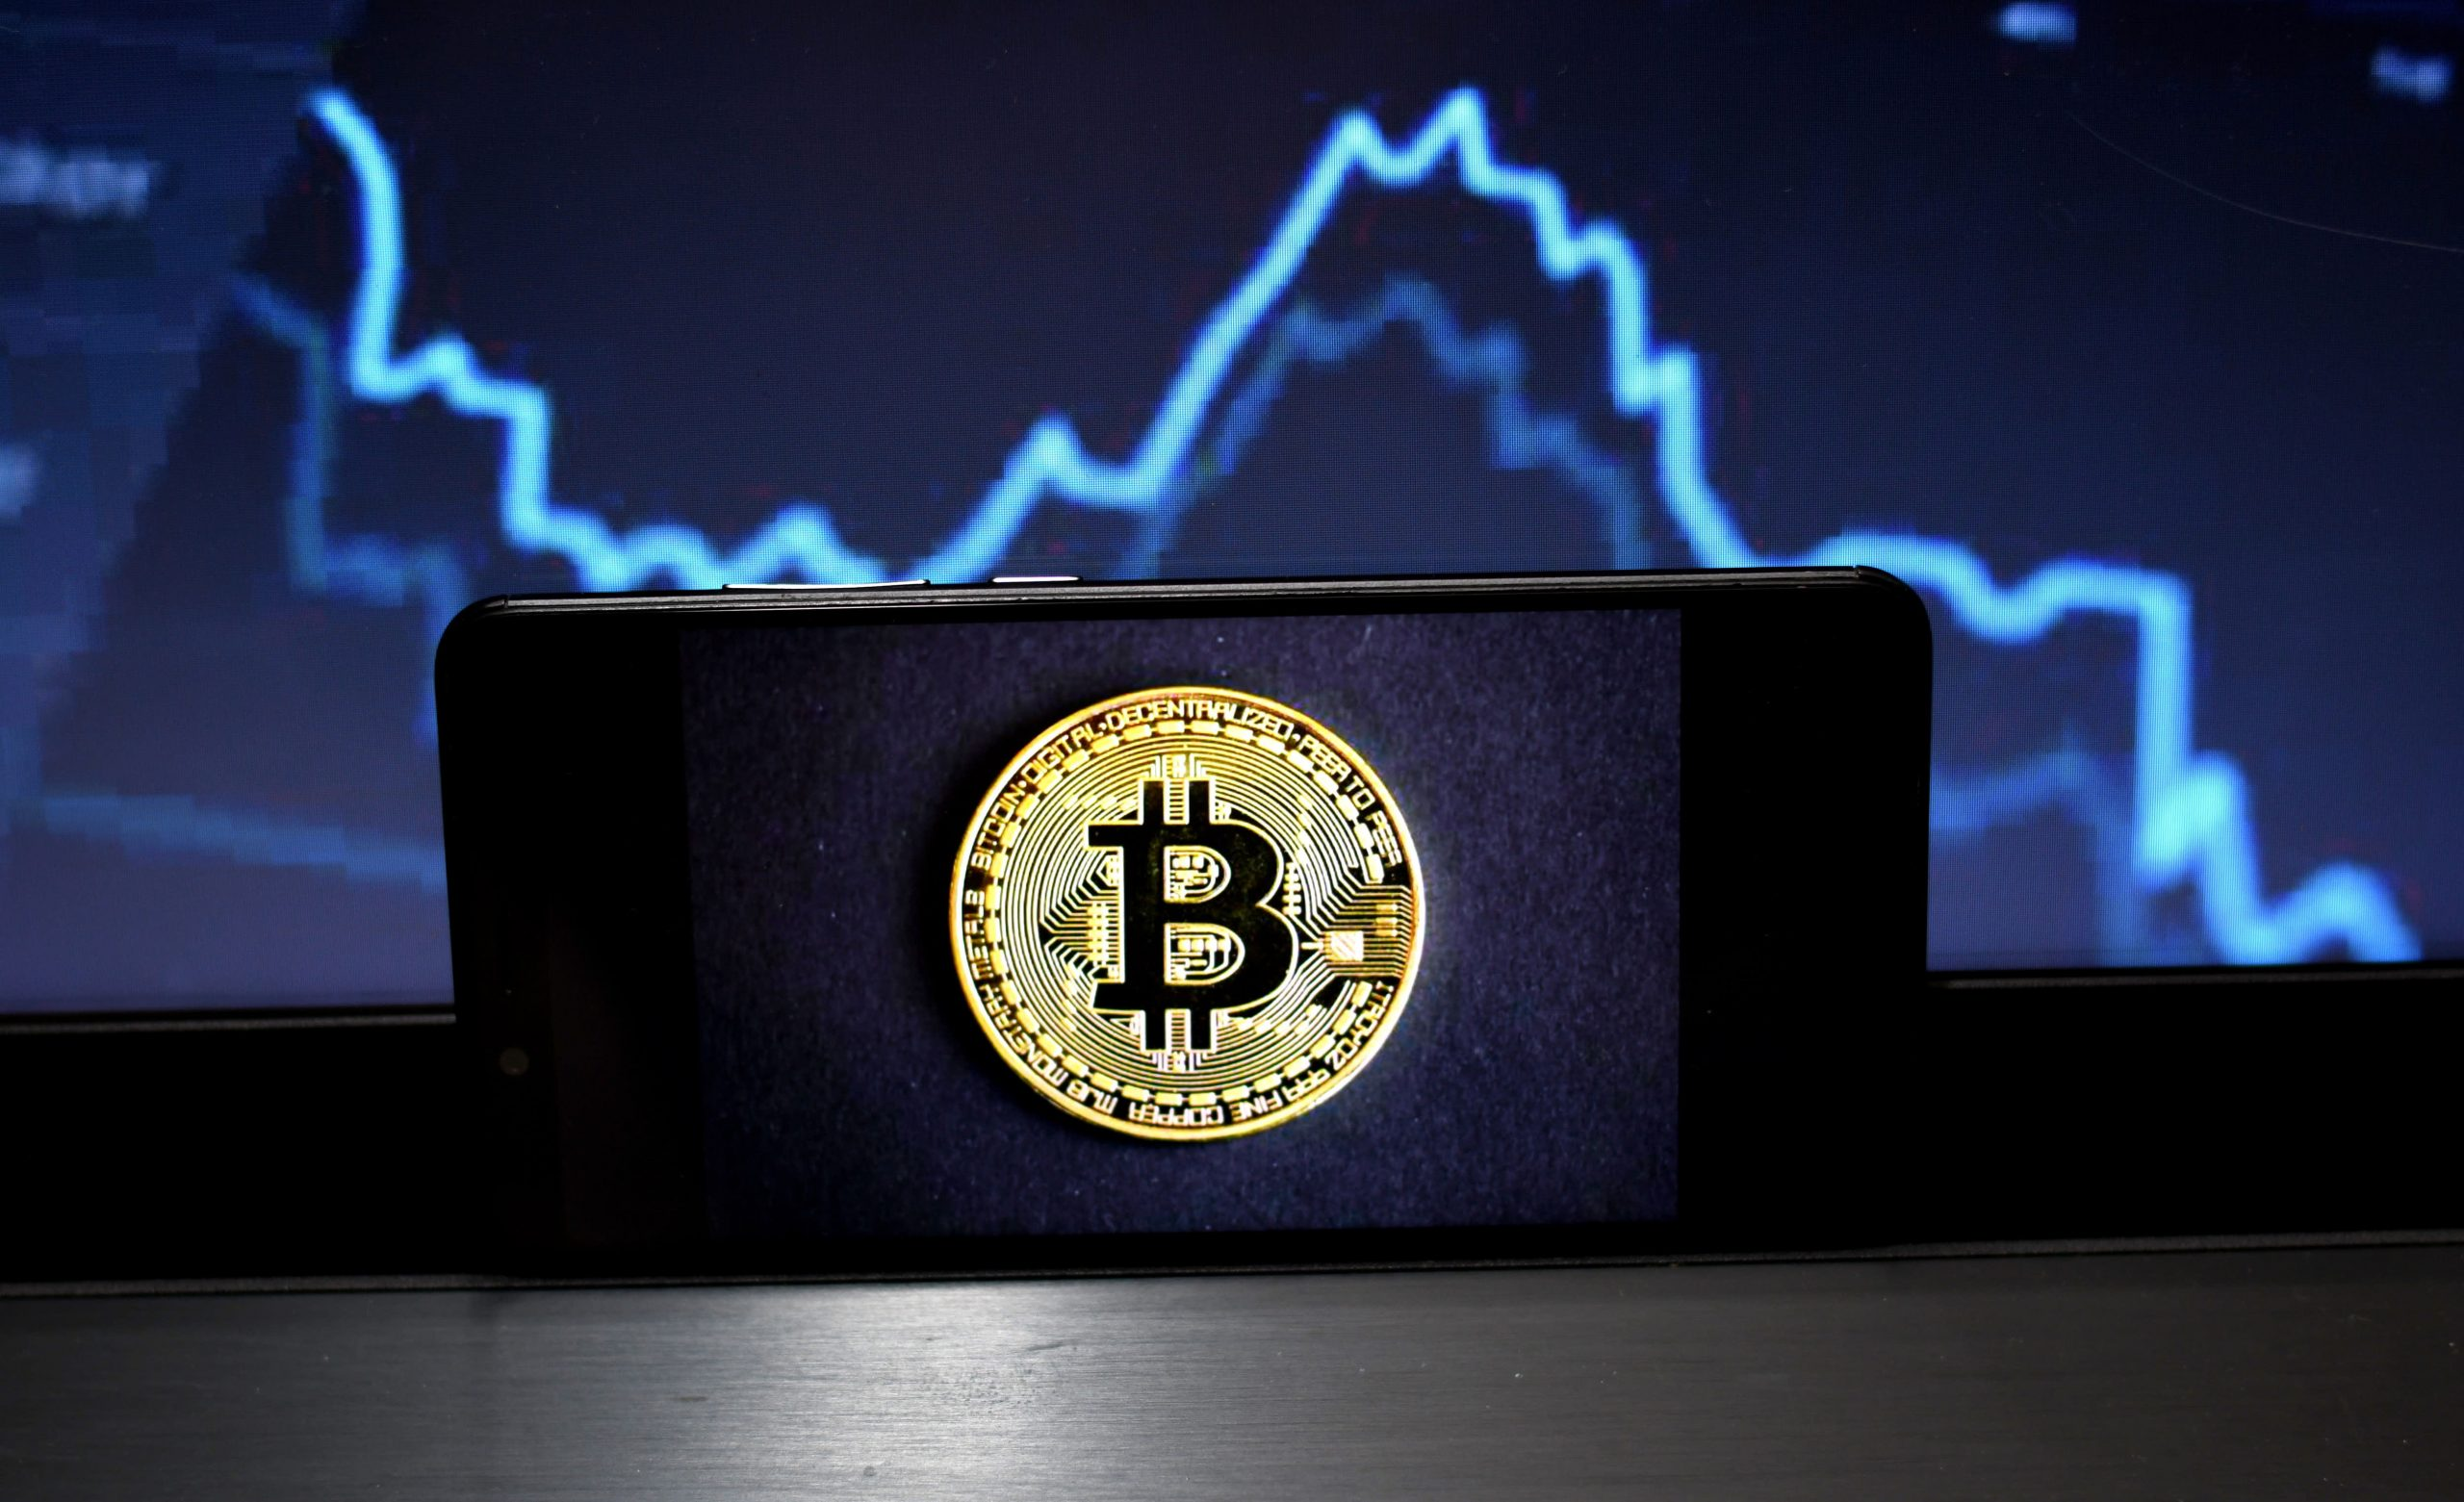 Two-day bitcoin sell-off wipes out over $100 billion from the entire crypto market